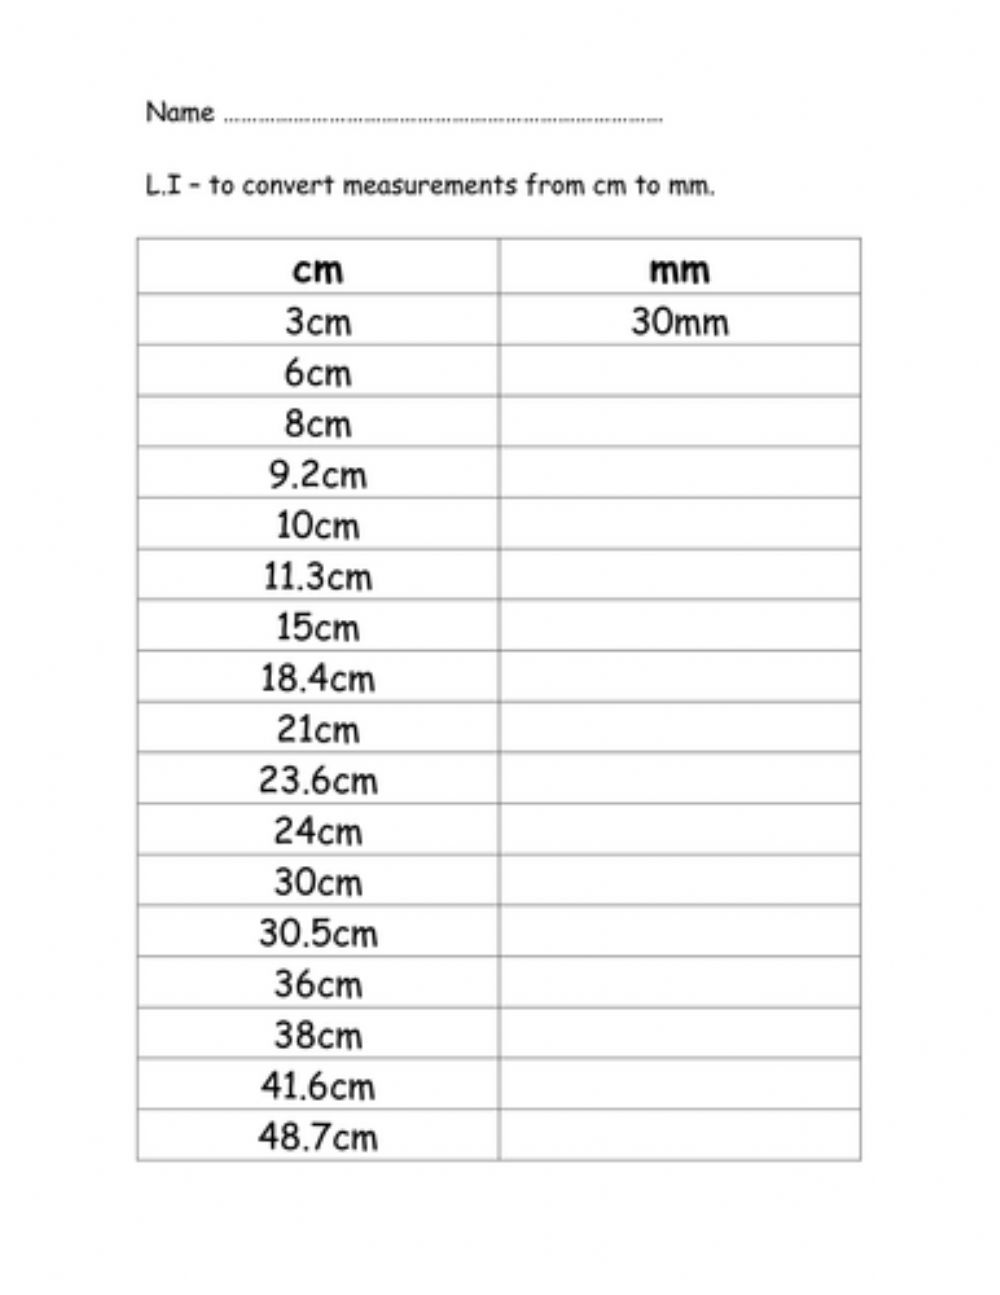 hight resolution of Converting cm to mm worksheet